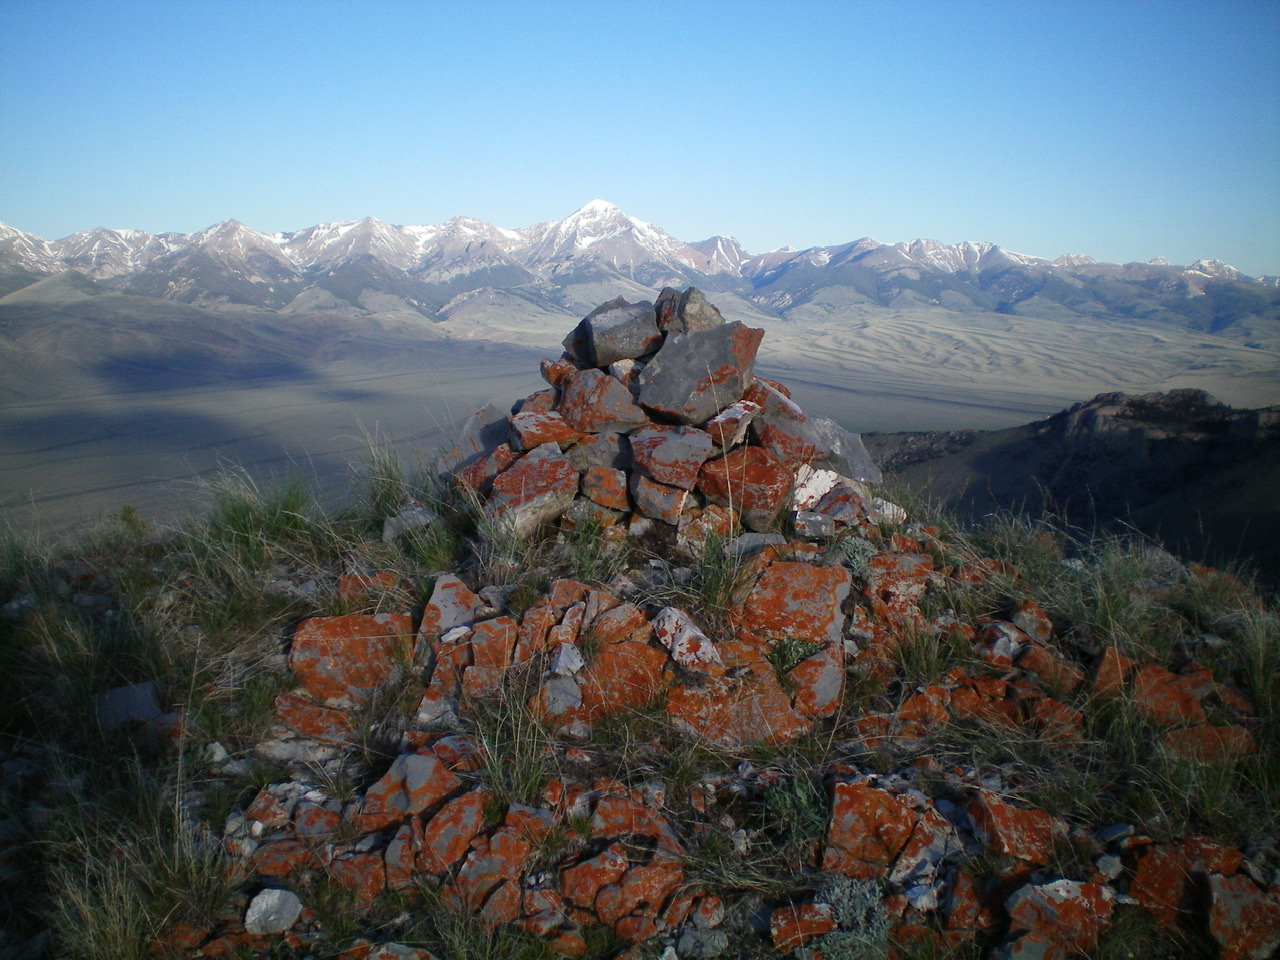 The summit cairn atop Peak 7910 with snow-capped Diamond Peak in the distance. Livingston Douglas Photo